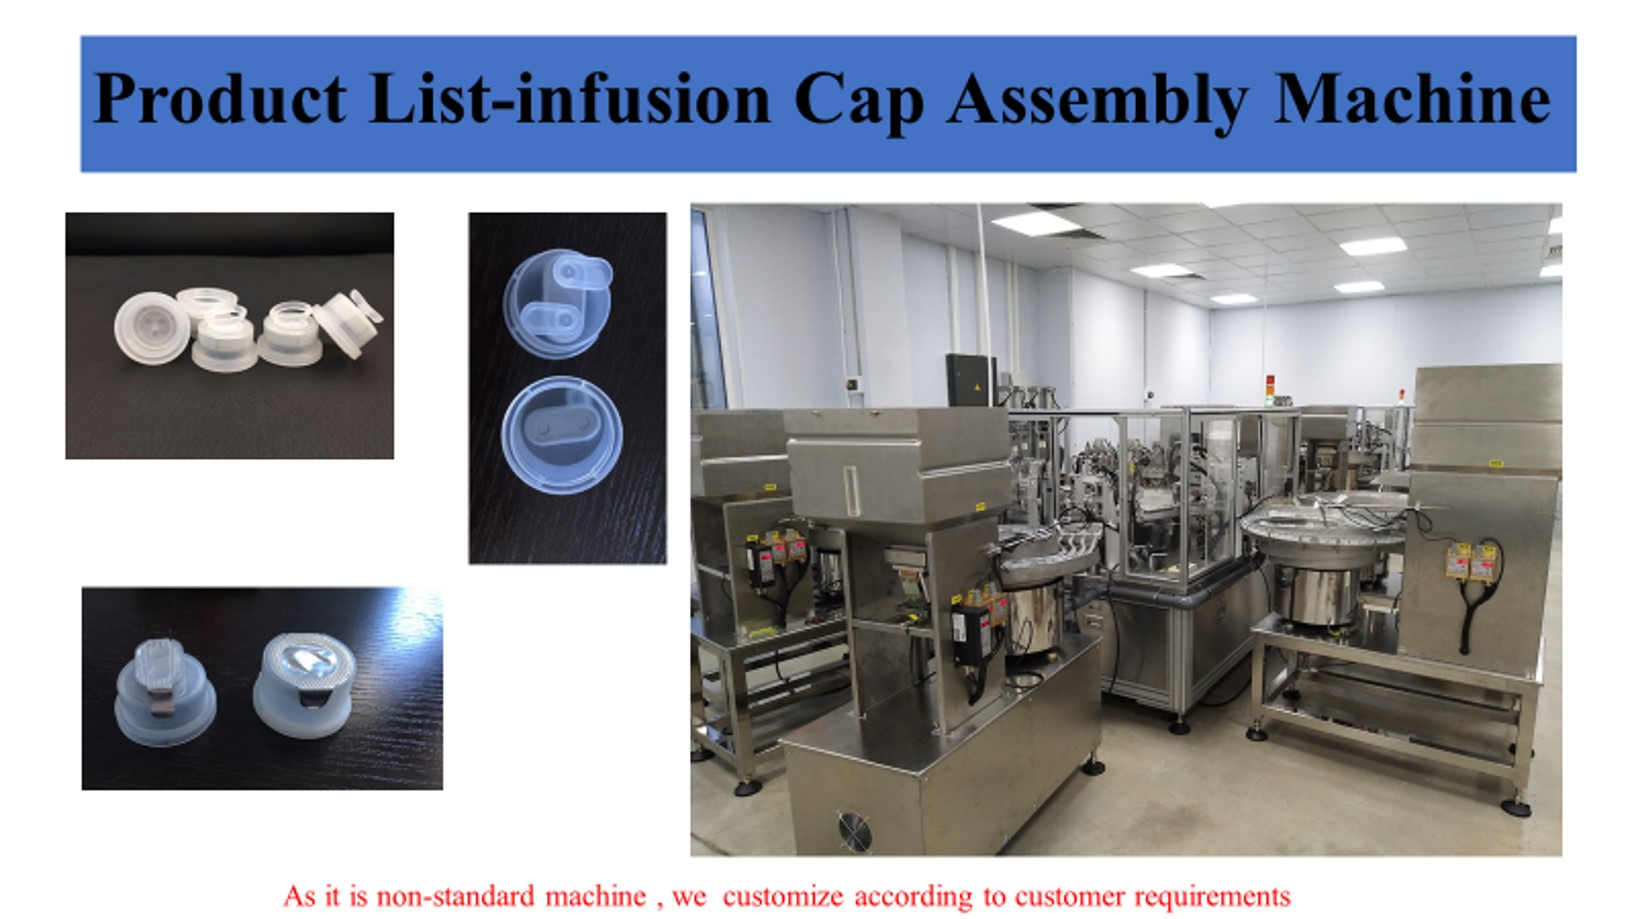 Euro head cap full atuomatic assembly machine